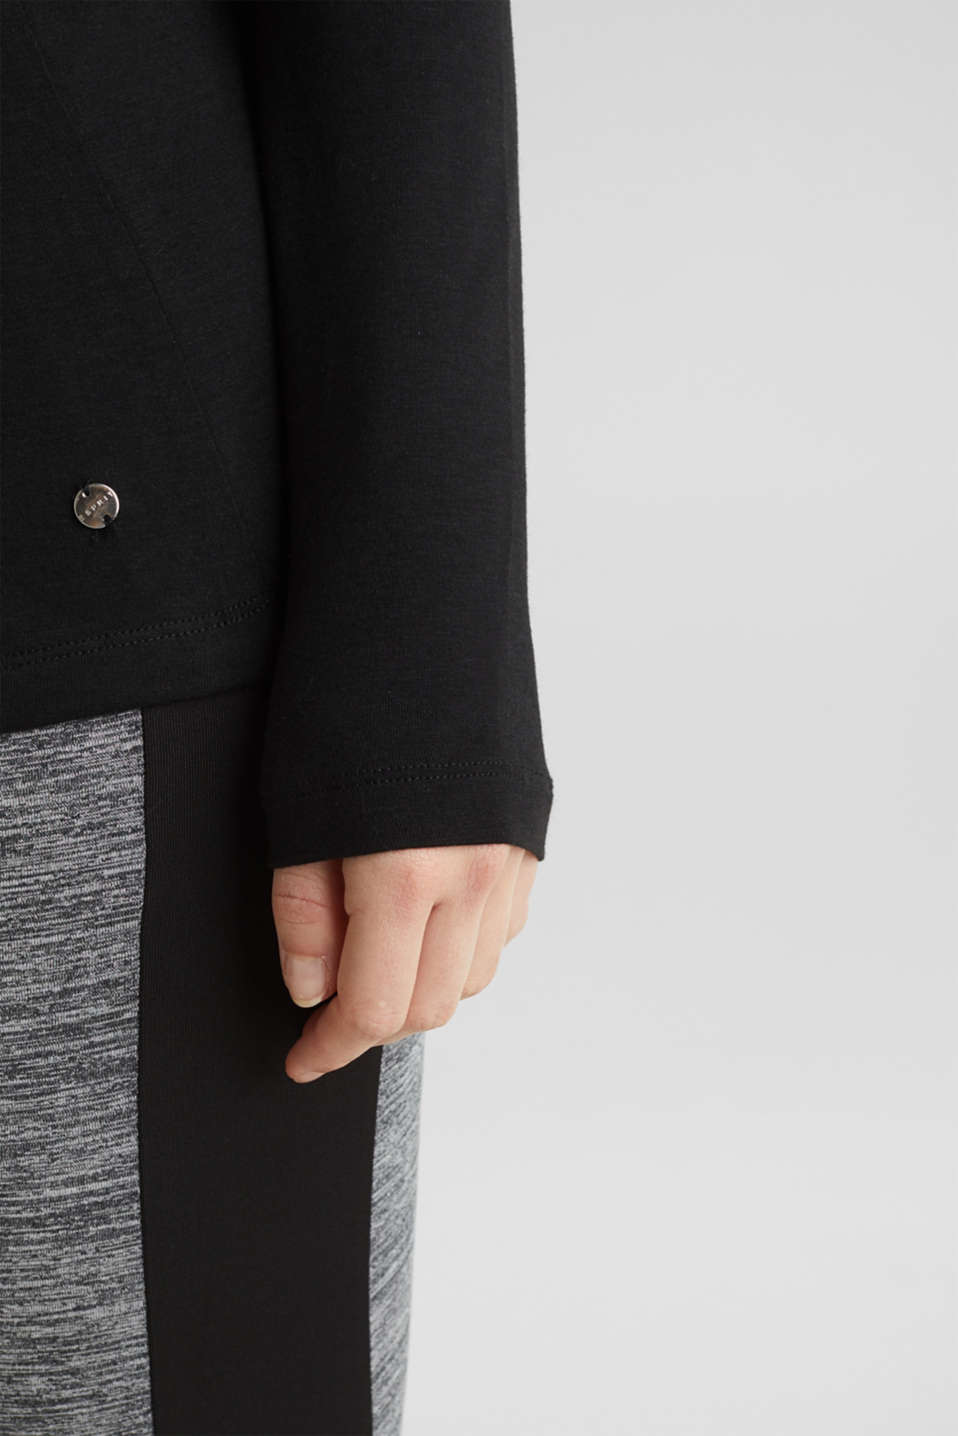 Stretch long sleeve top with decorative stitching, LCBLACK, detail image number 5